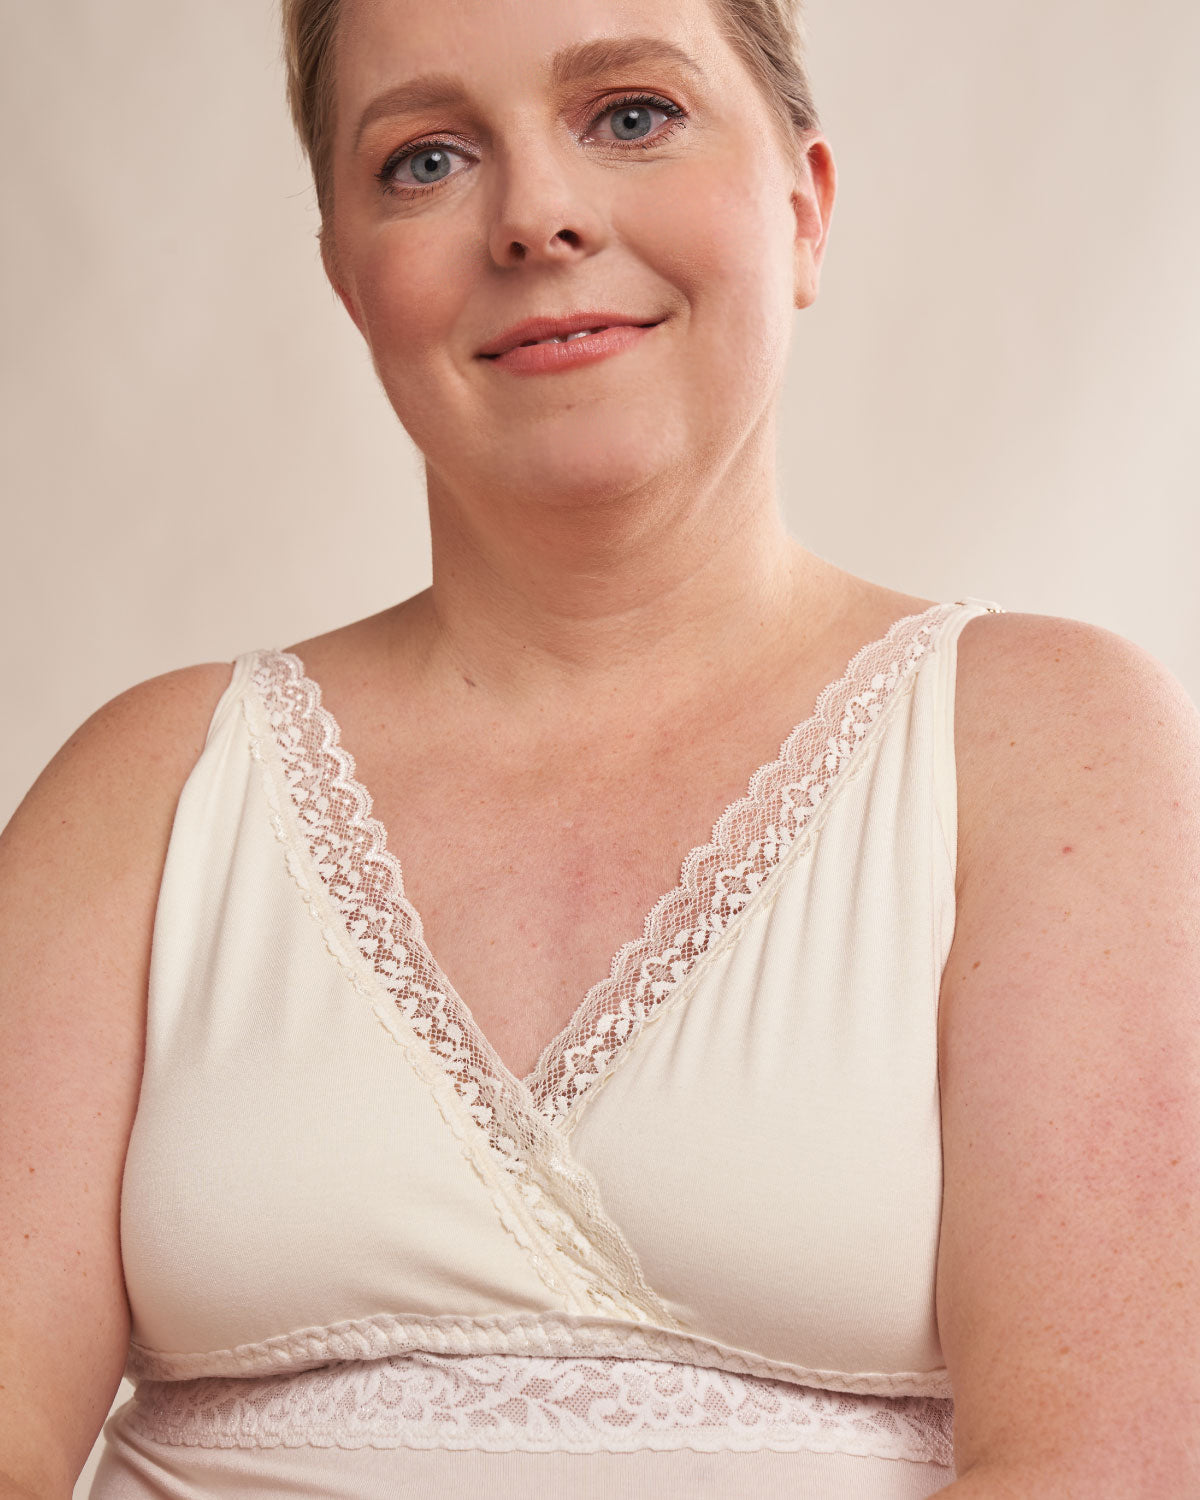 Ivory, pocketed camisole with wireless cups, wrap front design, lace v neck and adjustable straps on mastectomy model.